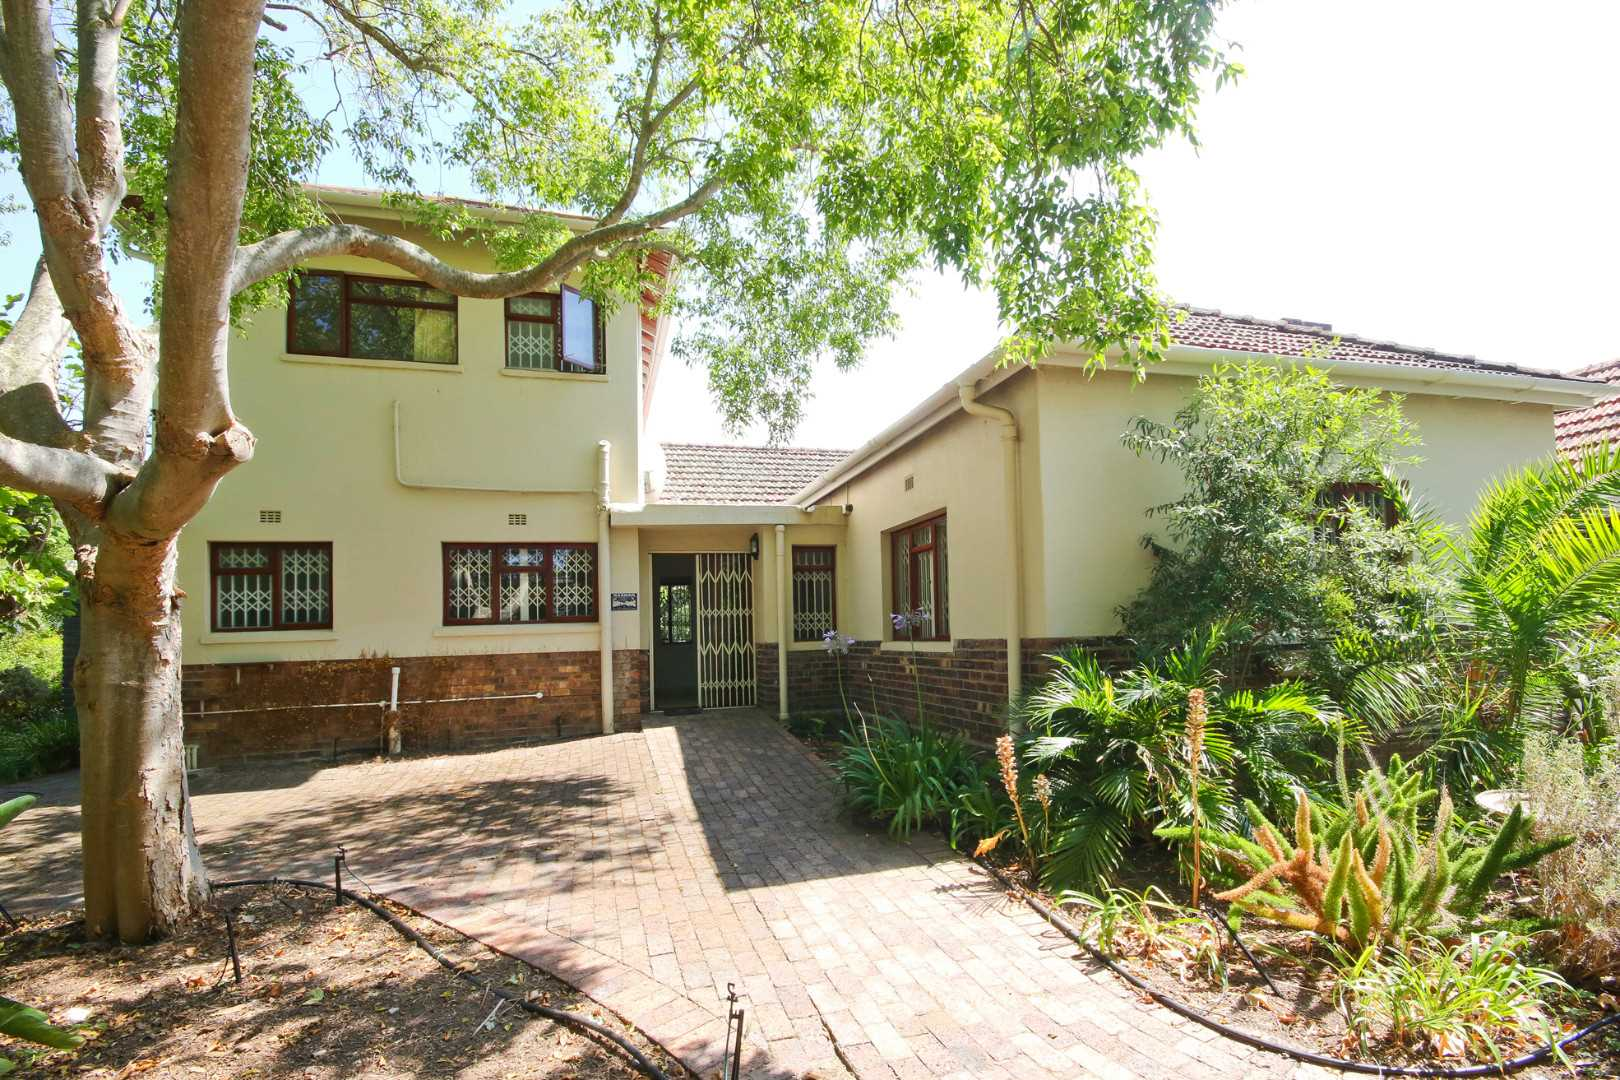 A characterful home with lots of potential in Somerset West